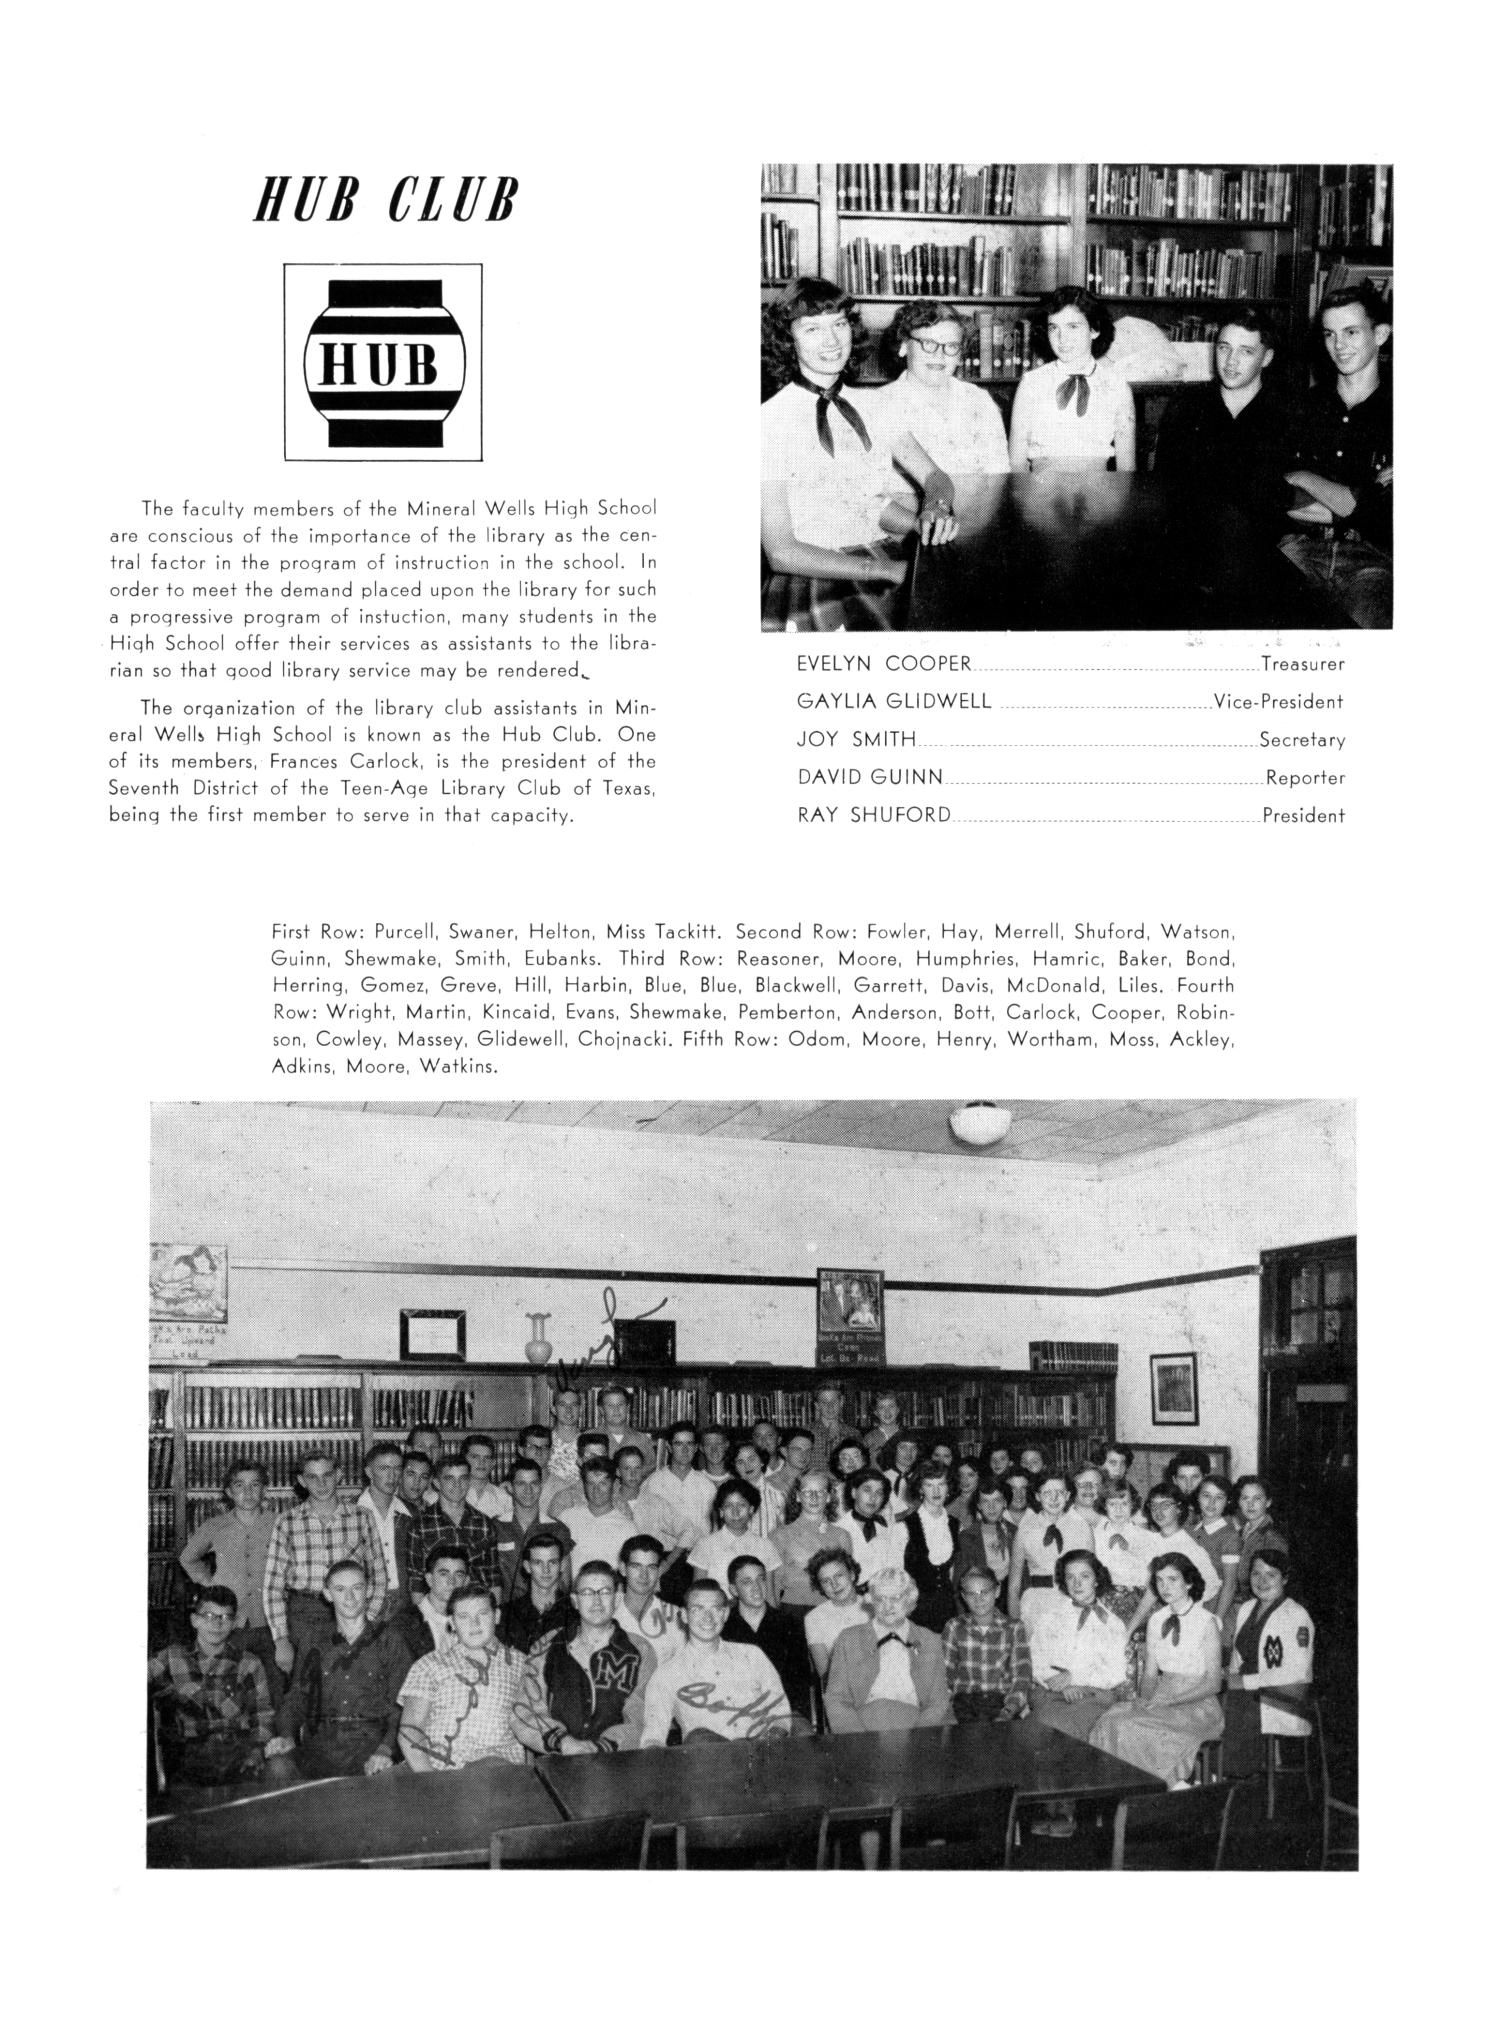 The Burro, Yearbook of Mineral Wells High School, 1953                                                                                                      83